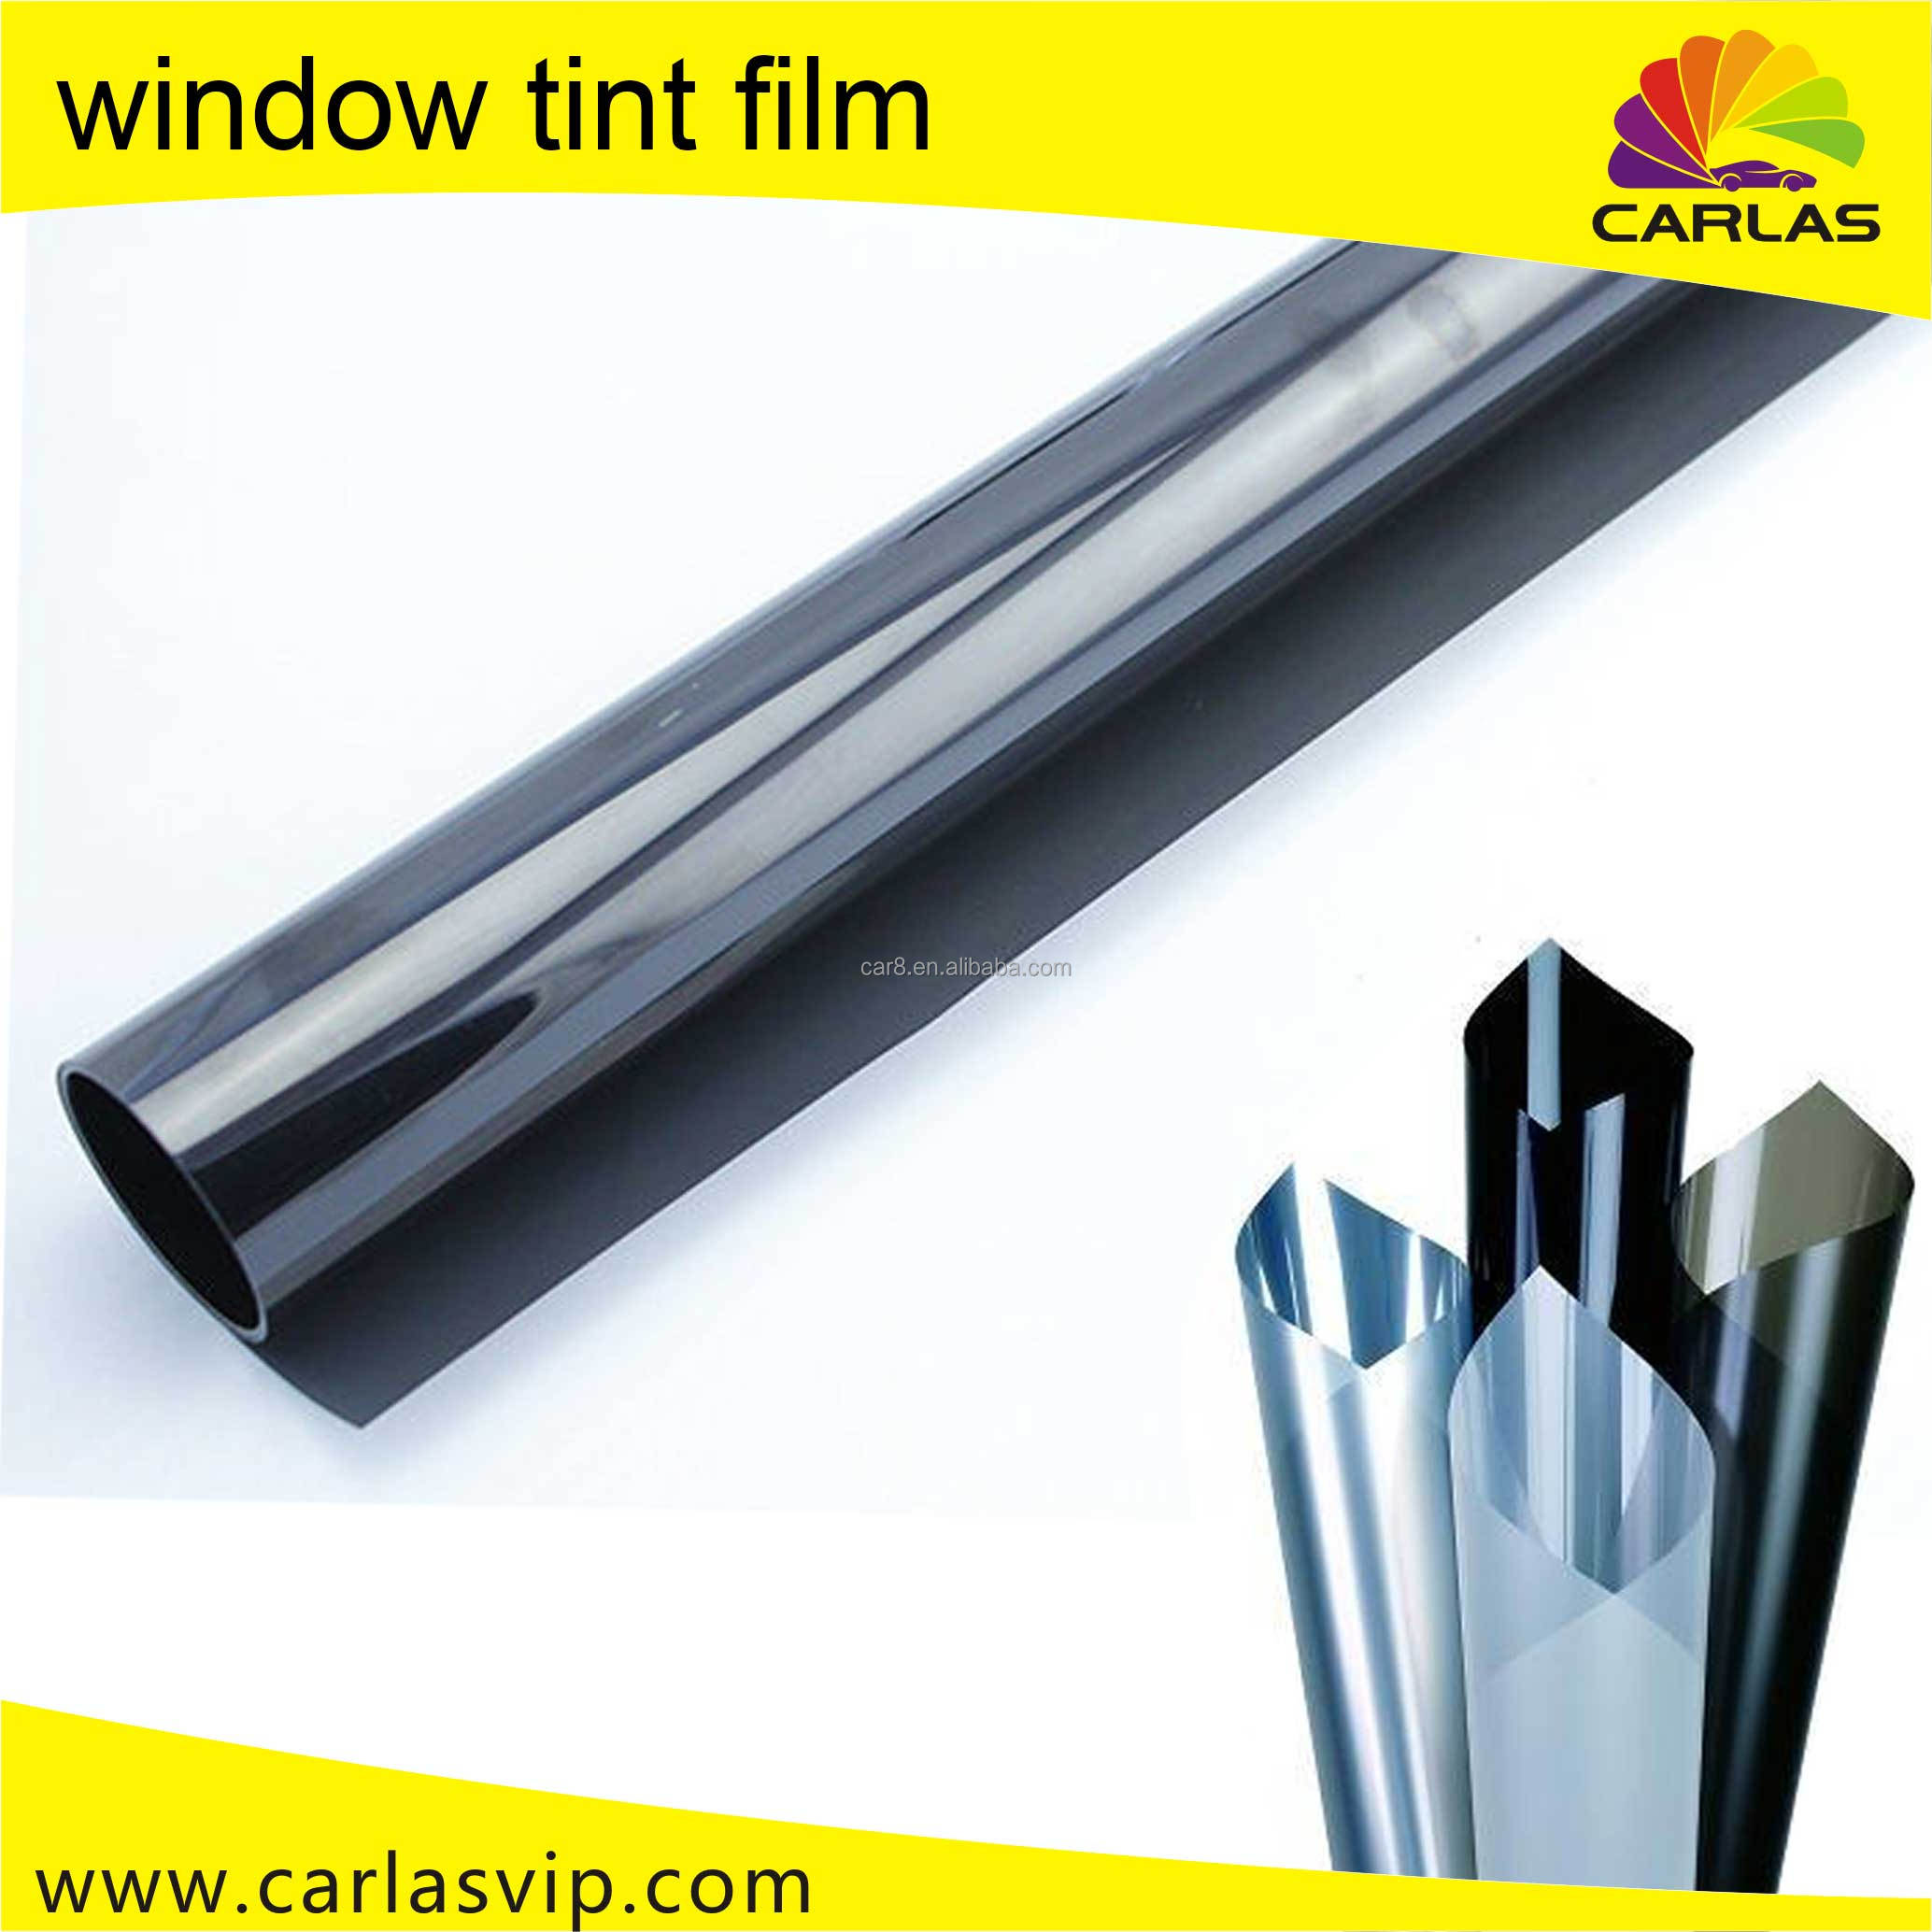 Guangzhou wholesale self adhesive electrostatic window film 5 years gurantee electric tint film for car window